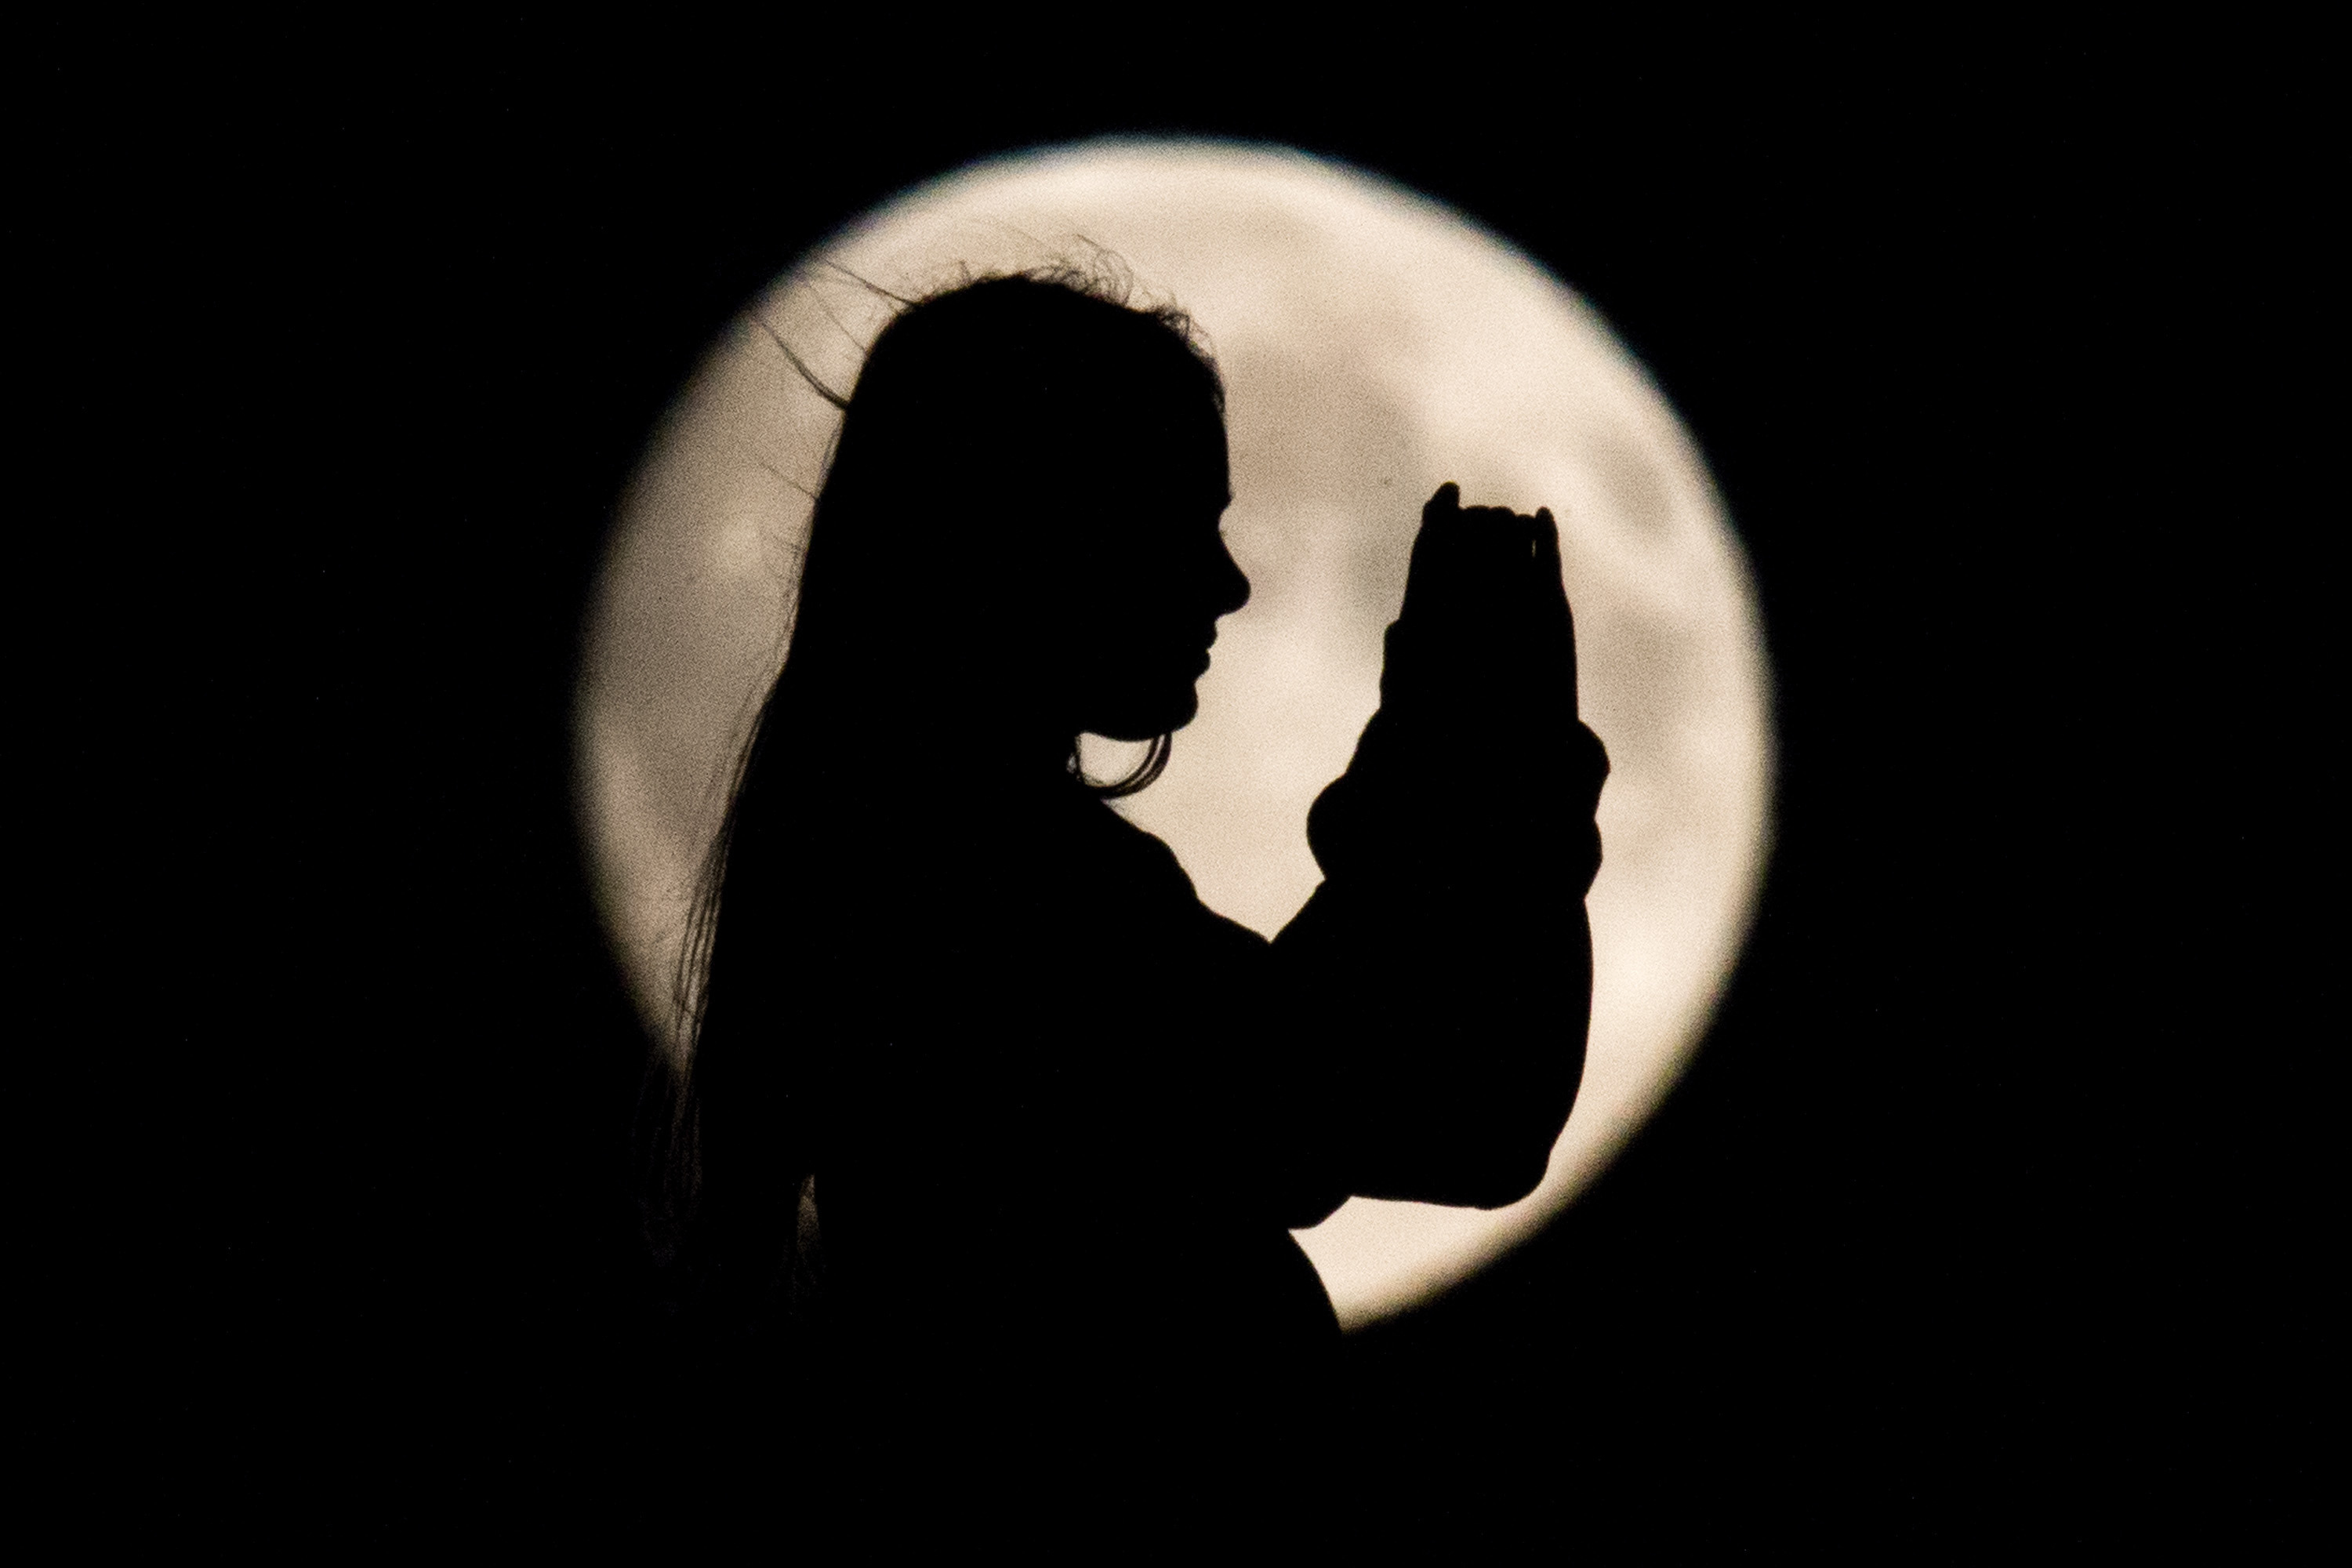 The silhouette of a girl appears as against the backdrop of of a bright moon in Hanover, Germany on Aug. 29, 2015.